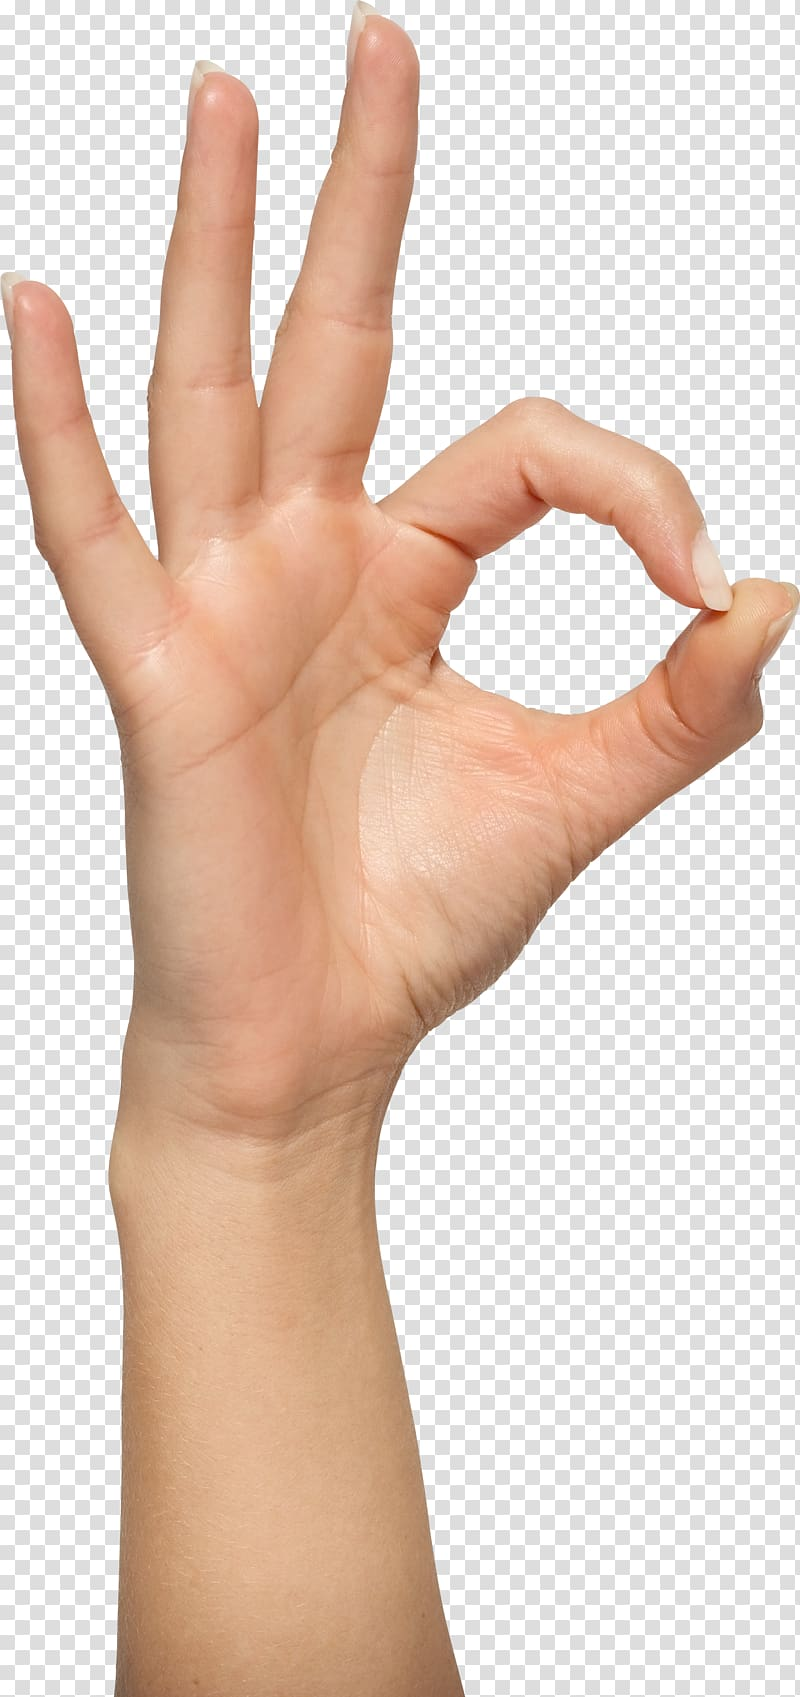 Fingers clipart okay. Sign ok gesture hand